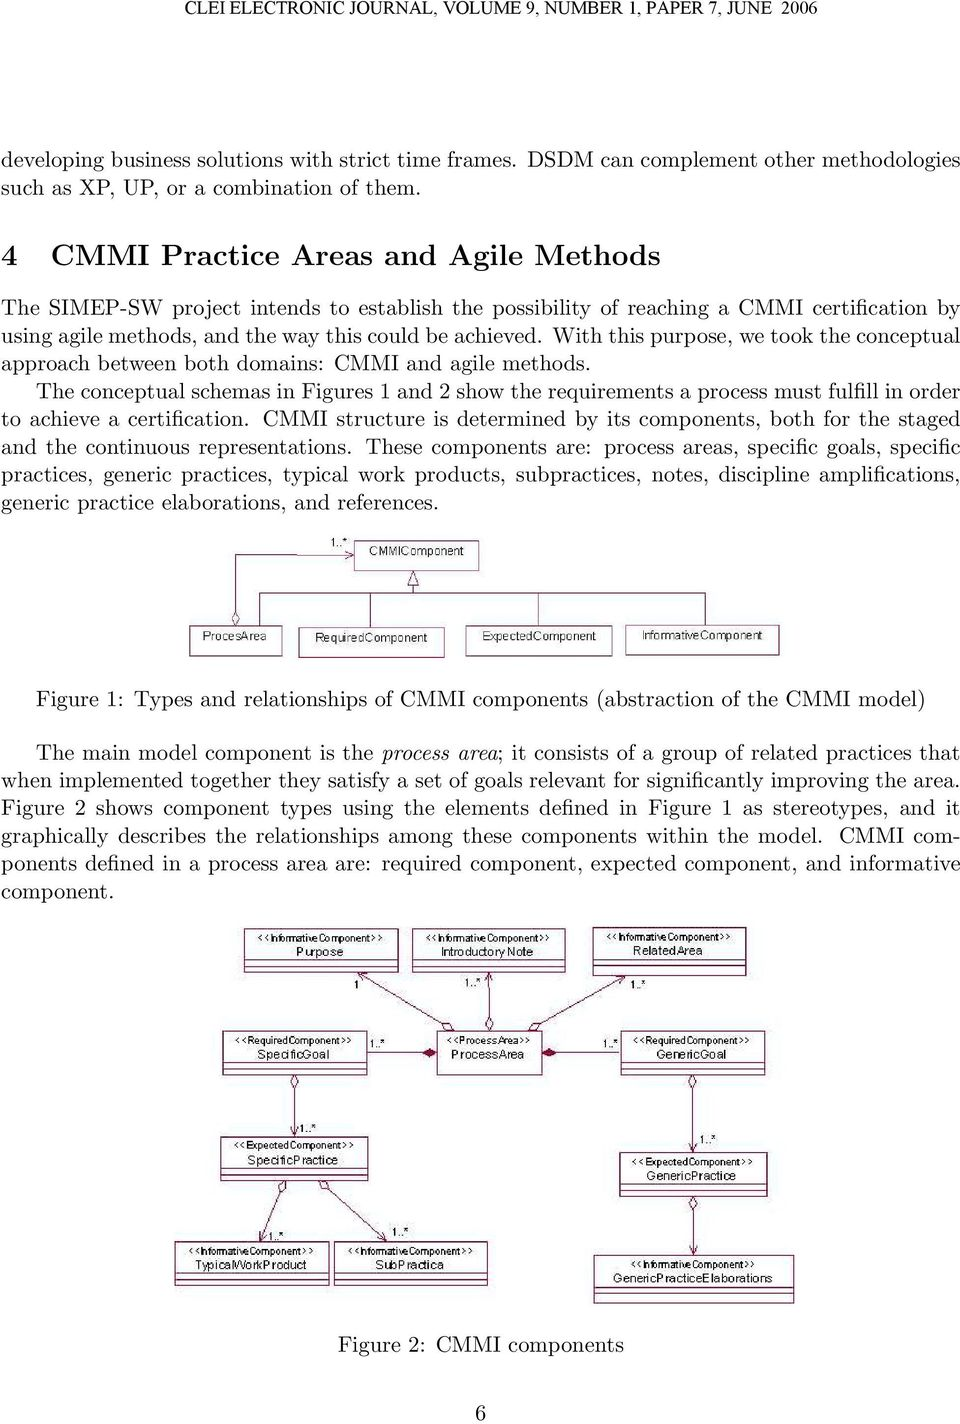 With this purpose, we took the conceptual approach between both domains: CMMI and agile methods.